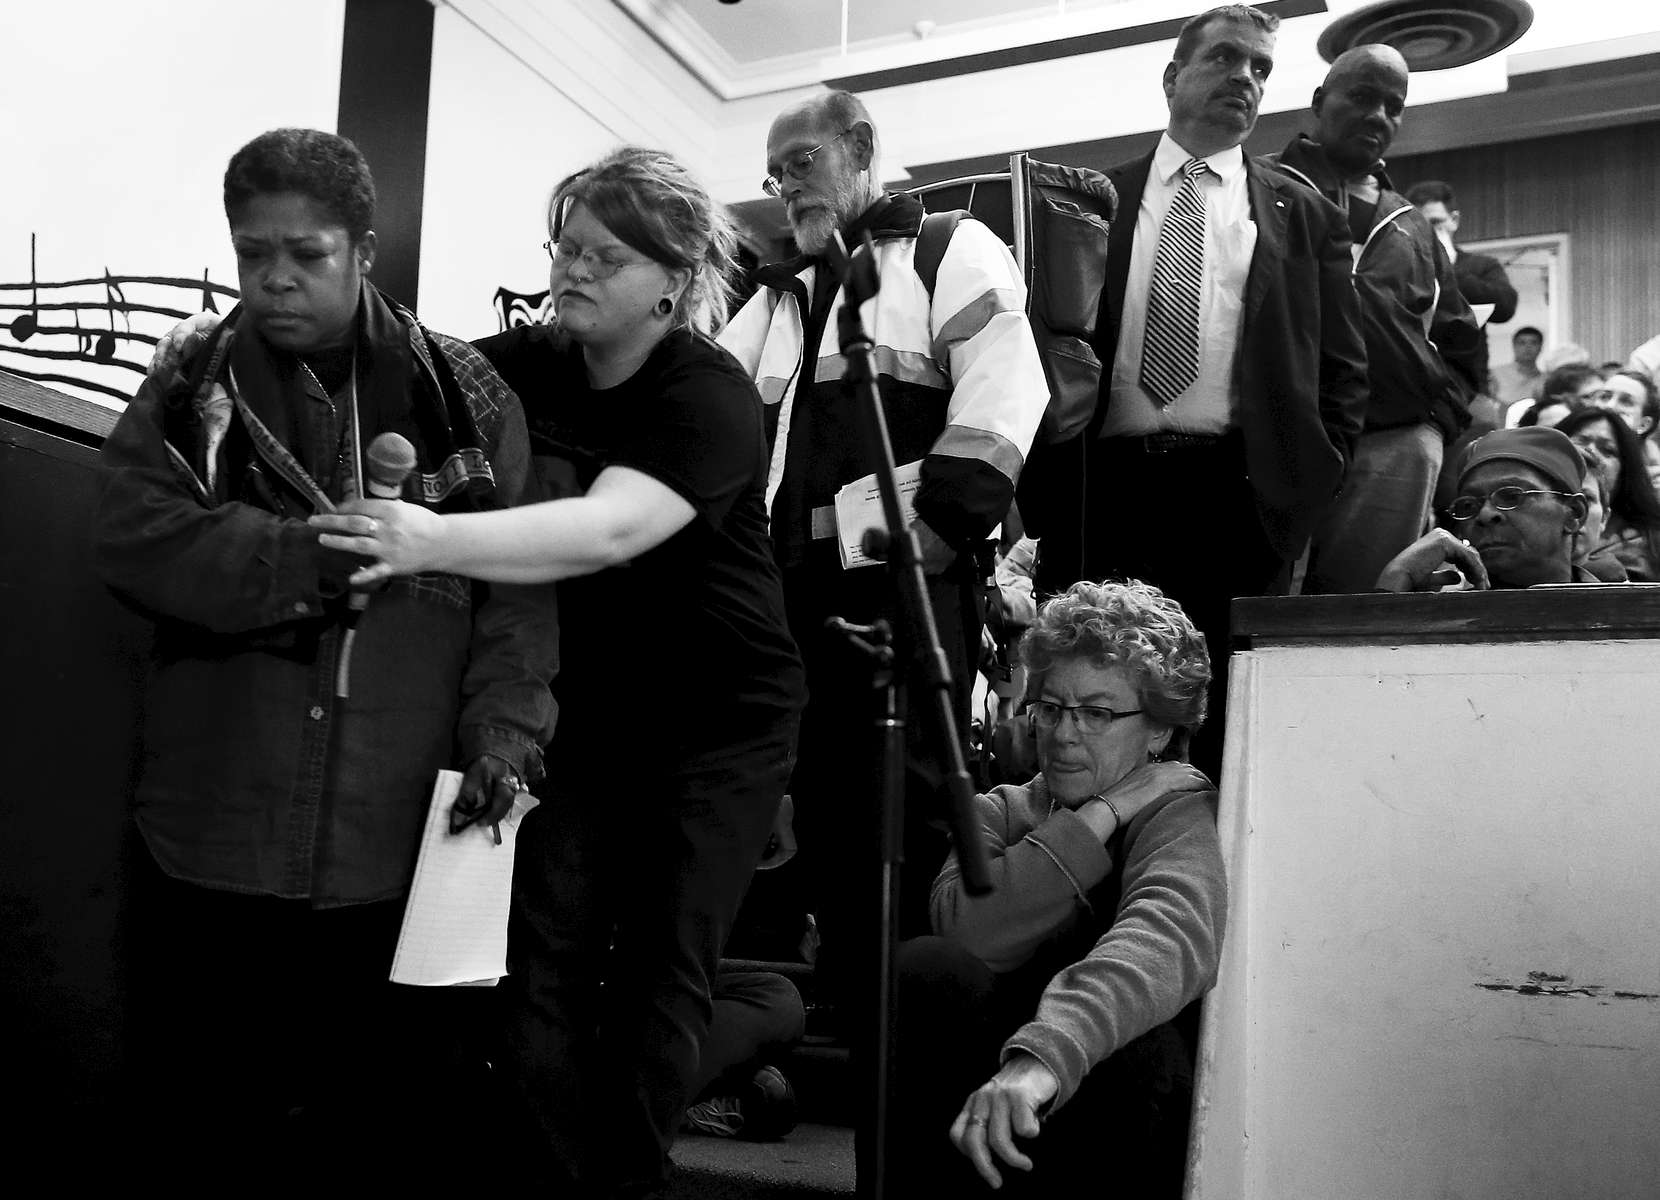 Boston, Massachusetts -- 11/12//2014-- When the floor was opened at a community meeting with city officials Lisa Marie Jenkins was the first to speak. She told the city officials gathered there how the lack of beds in shelters for women have led her to have to sleep outside.  She described weathering the cold nights in many layers underneath a plastic tarp scared she might get hypothermia.